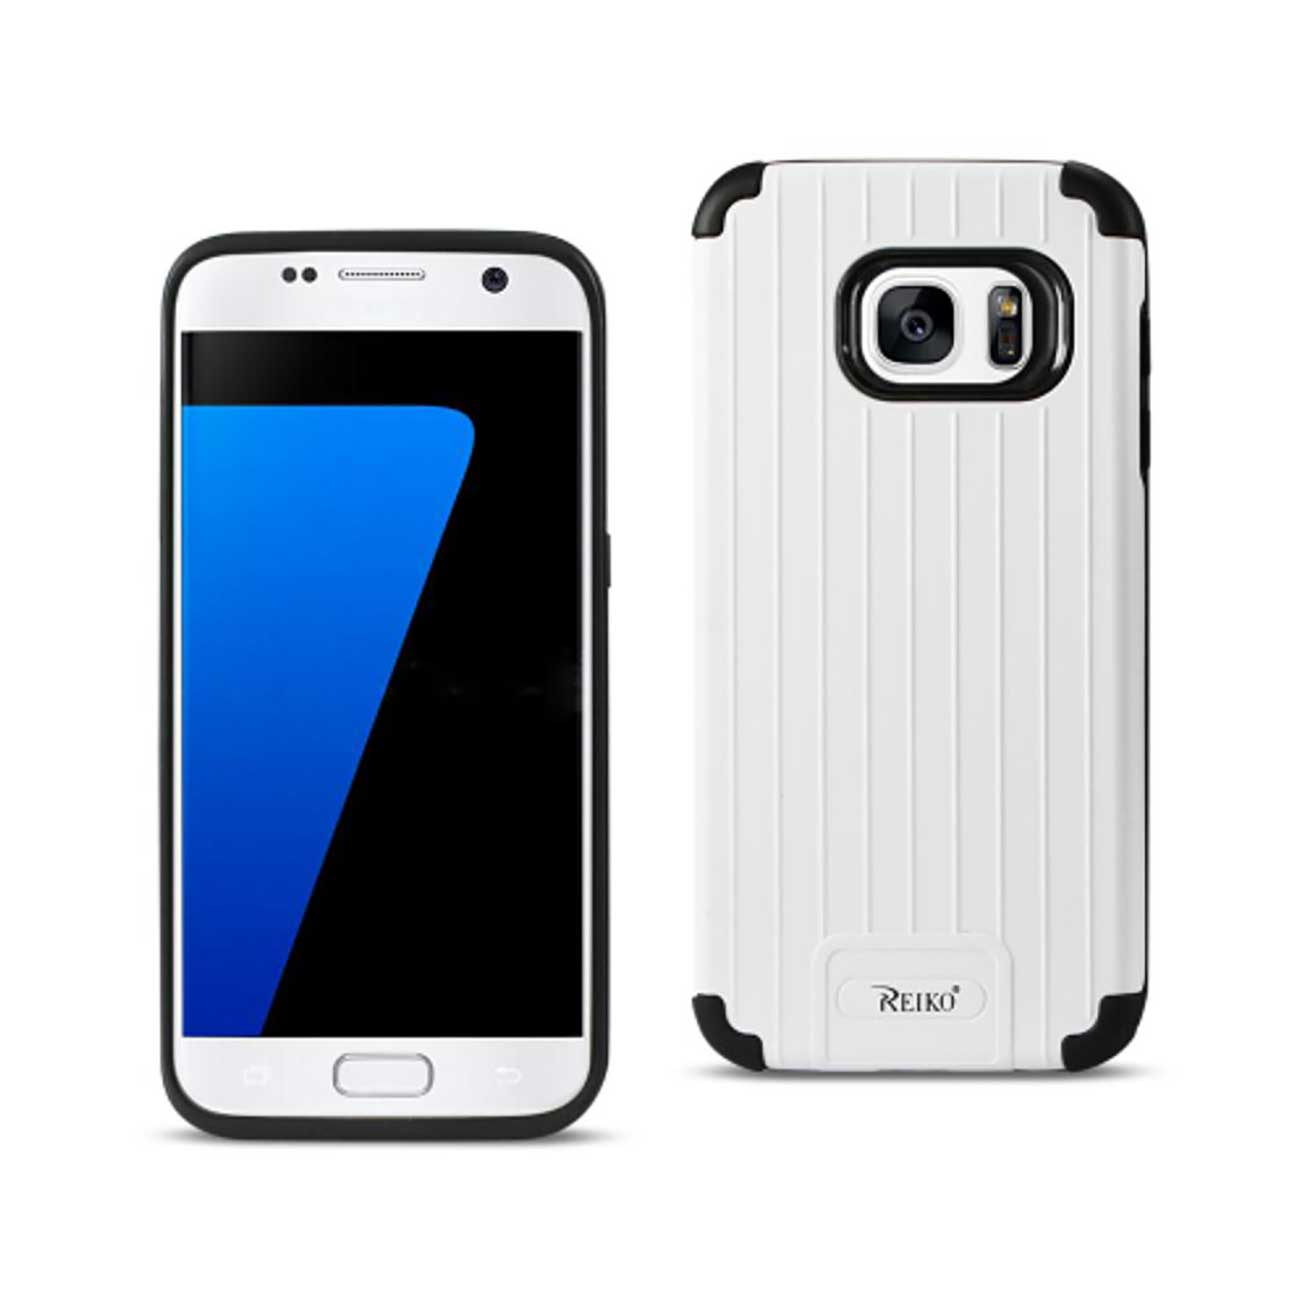 SAMSUNG GALAXY S7 RUGGED METAL TEXTURE HYBRID CASE WITH RIDGED BACK IN BLACK WHITE